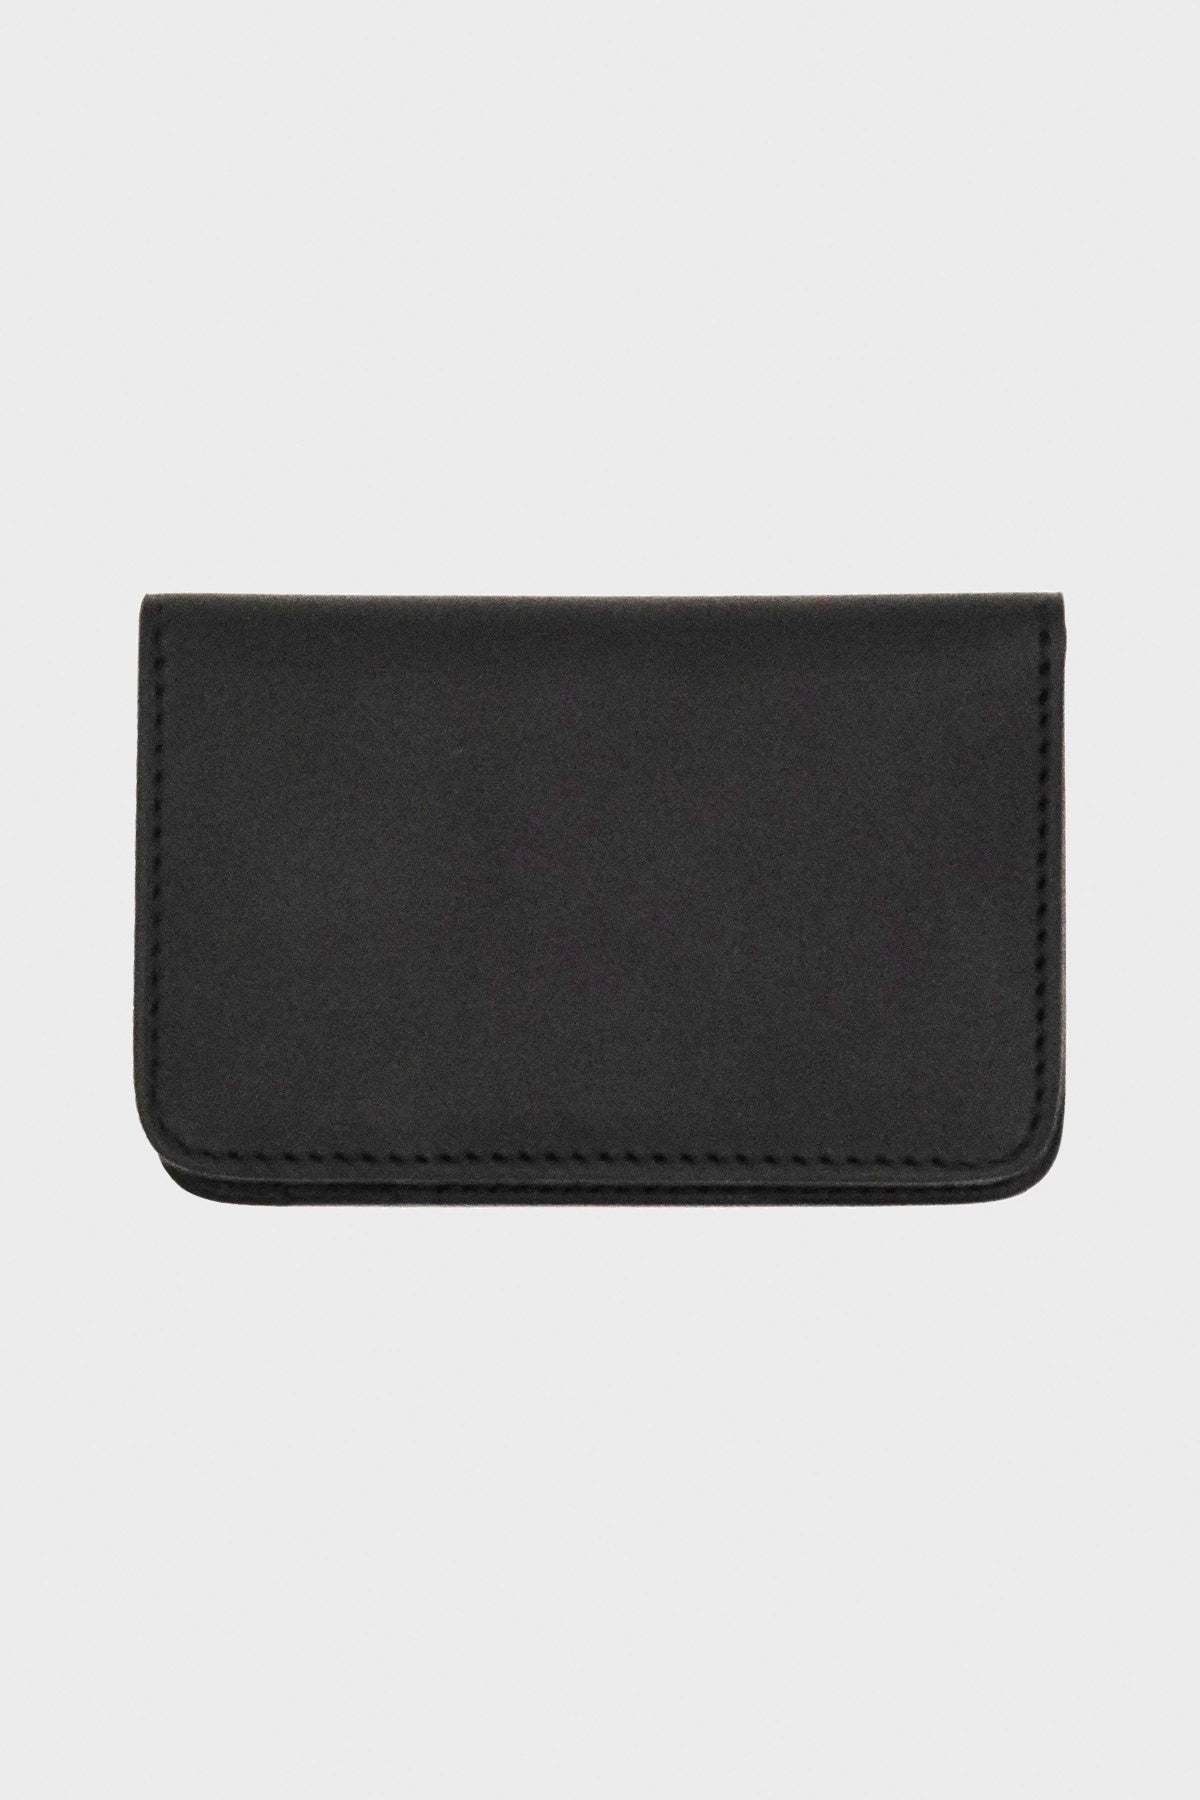 Laperruque - Folding Cardholder - Black Baranil - Canoe Club